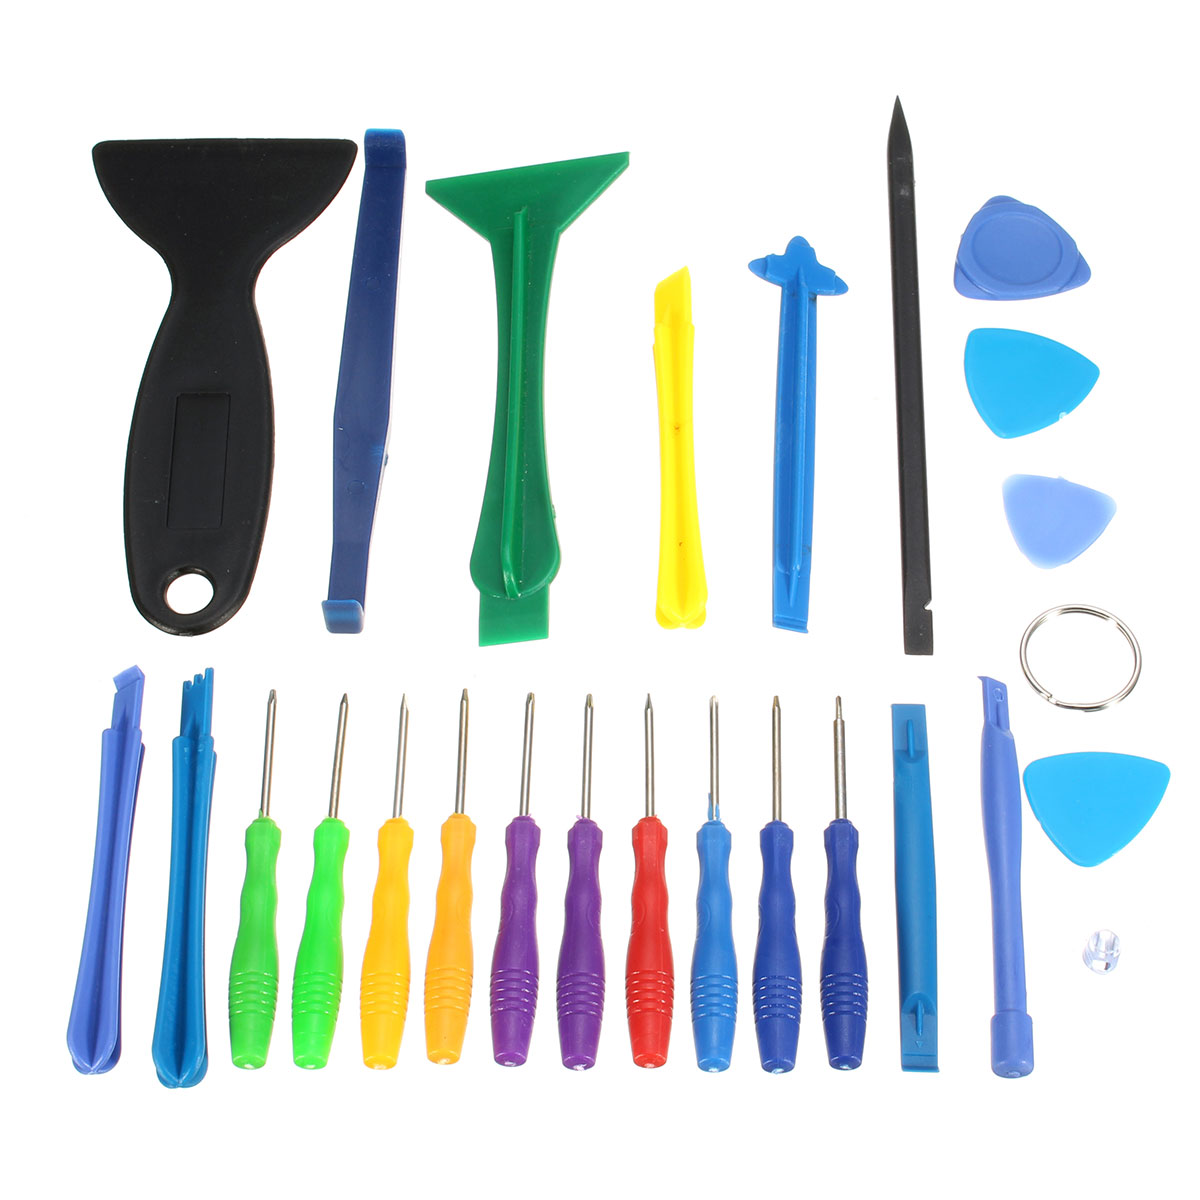 25 in 1 Repairtools Screwdrivers Set Kit For iPhone Android Blackberry Phone iPad